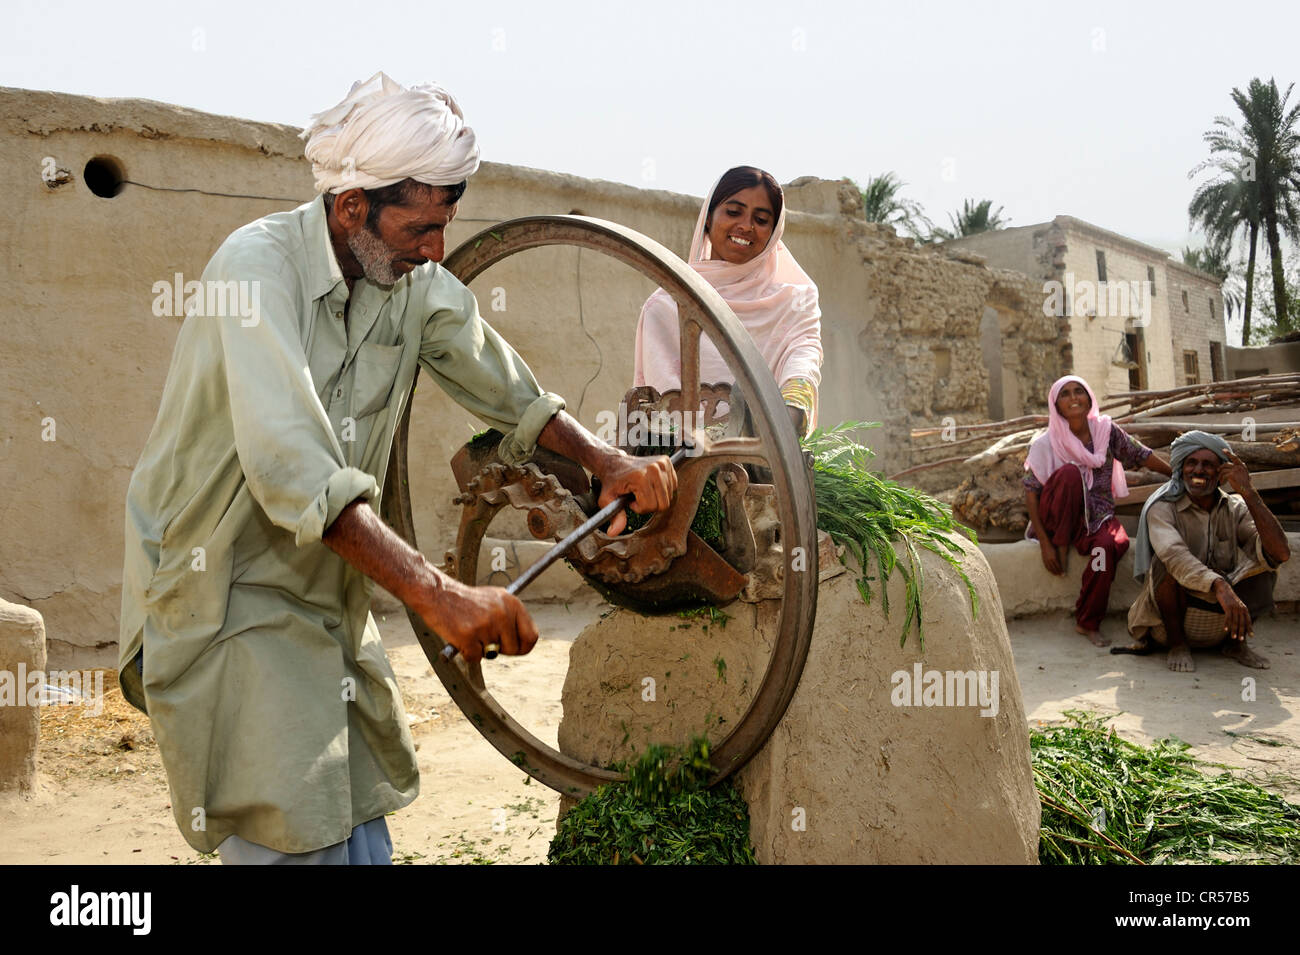 Farmer and his daughter are chaffing grass to feed it to goats and cattle, Basti Lehar Walla village, Punjab, Pakistan, - Stock Image